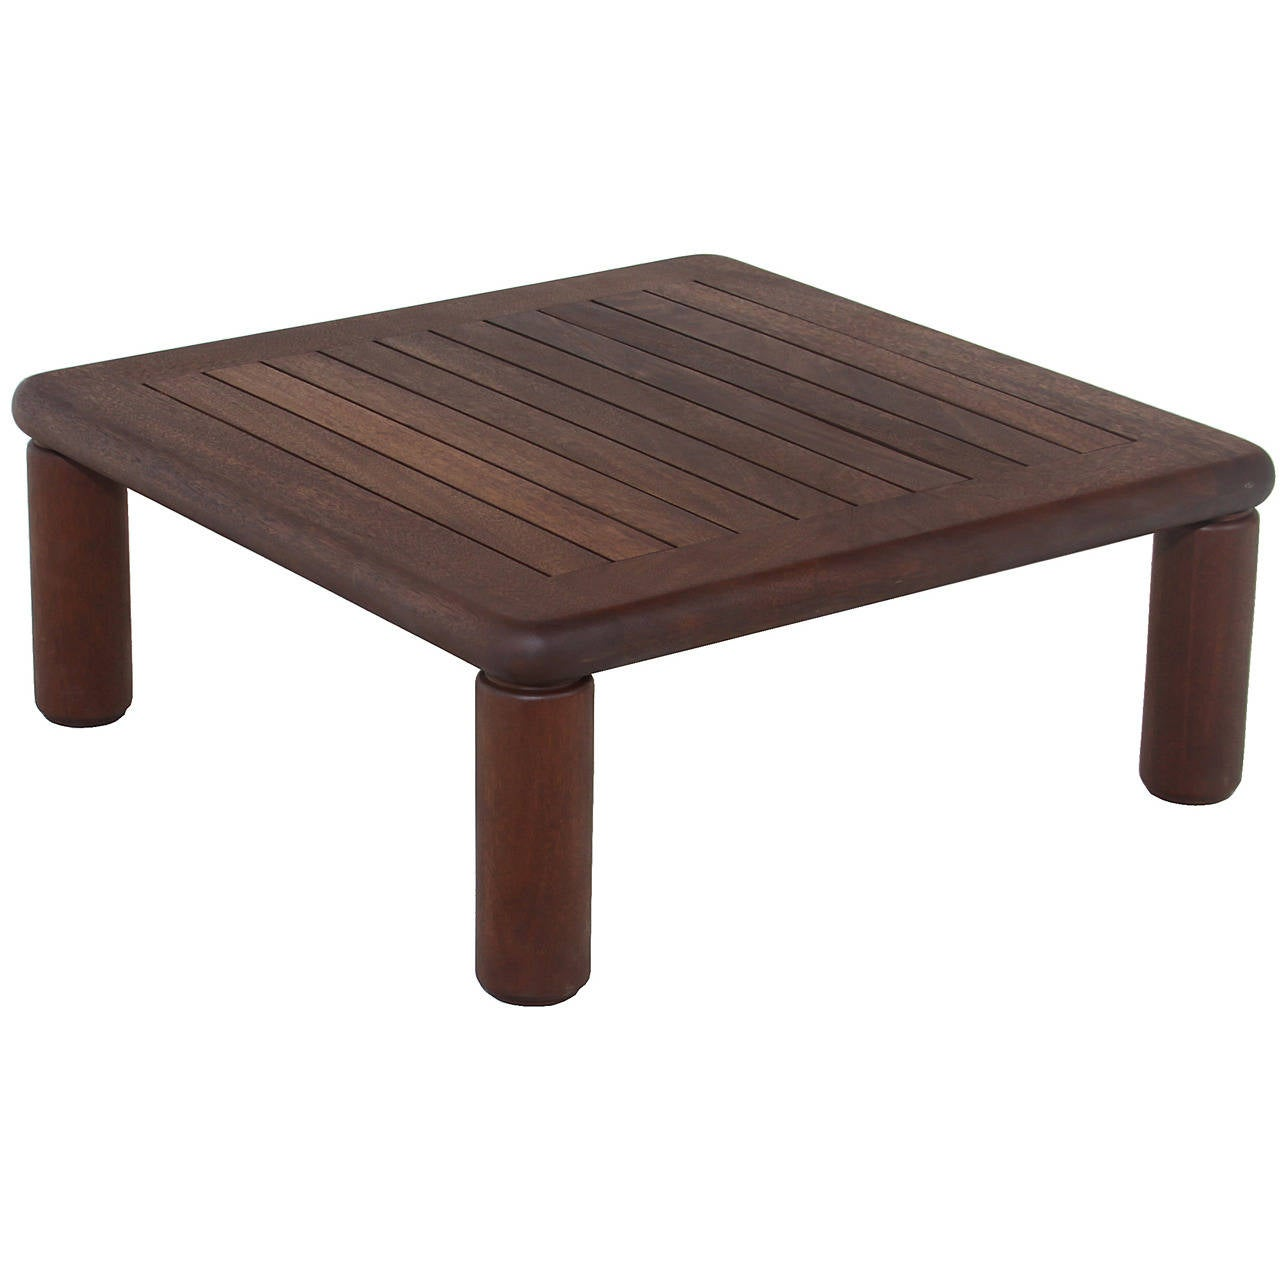 Slatted Solid Honduran Mahogany Coffee Table By Sherrill Broudy For Sale At 1stdibs